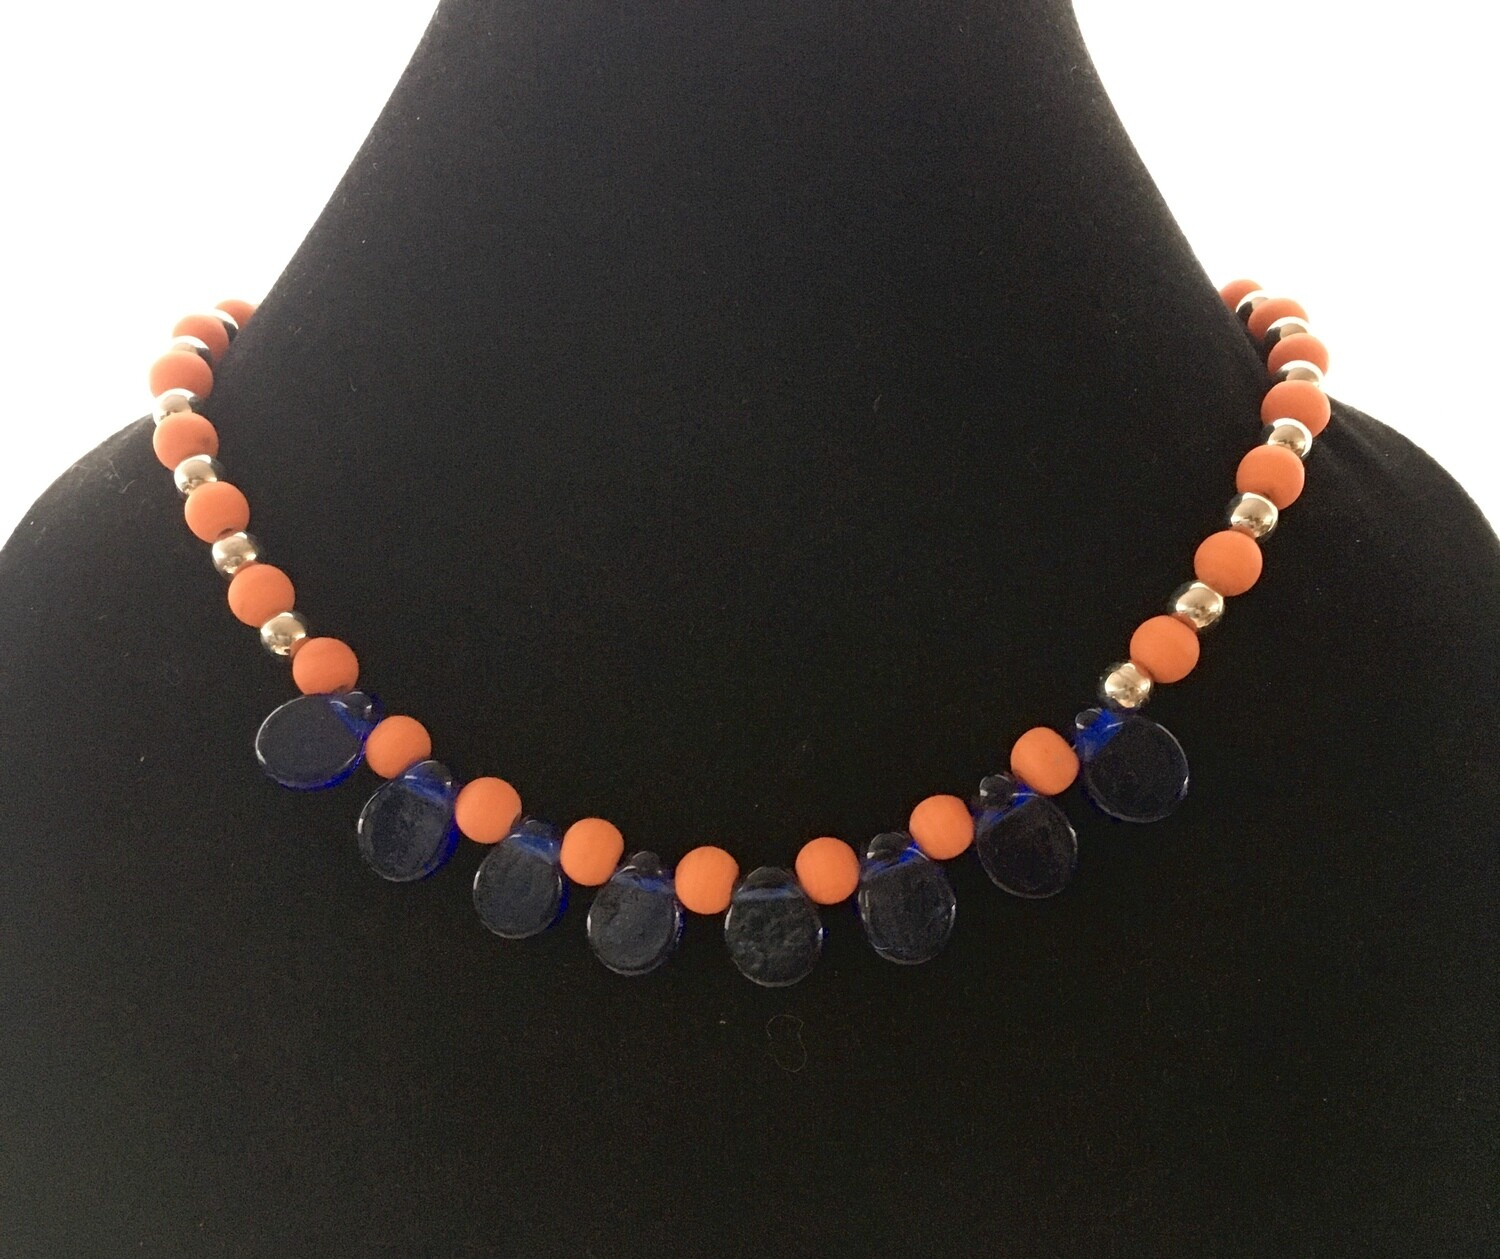 Blue teardrop and orange beads necklace